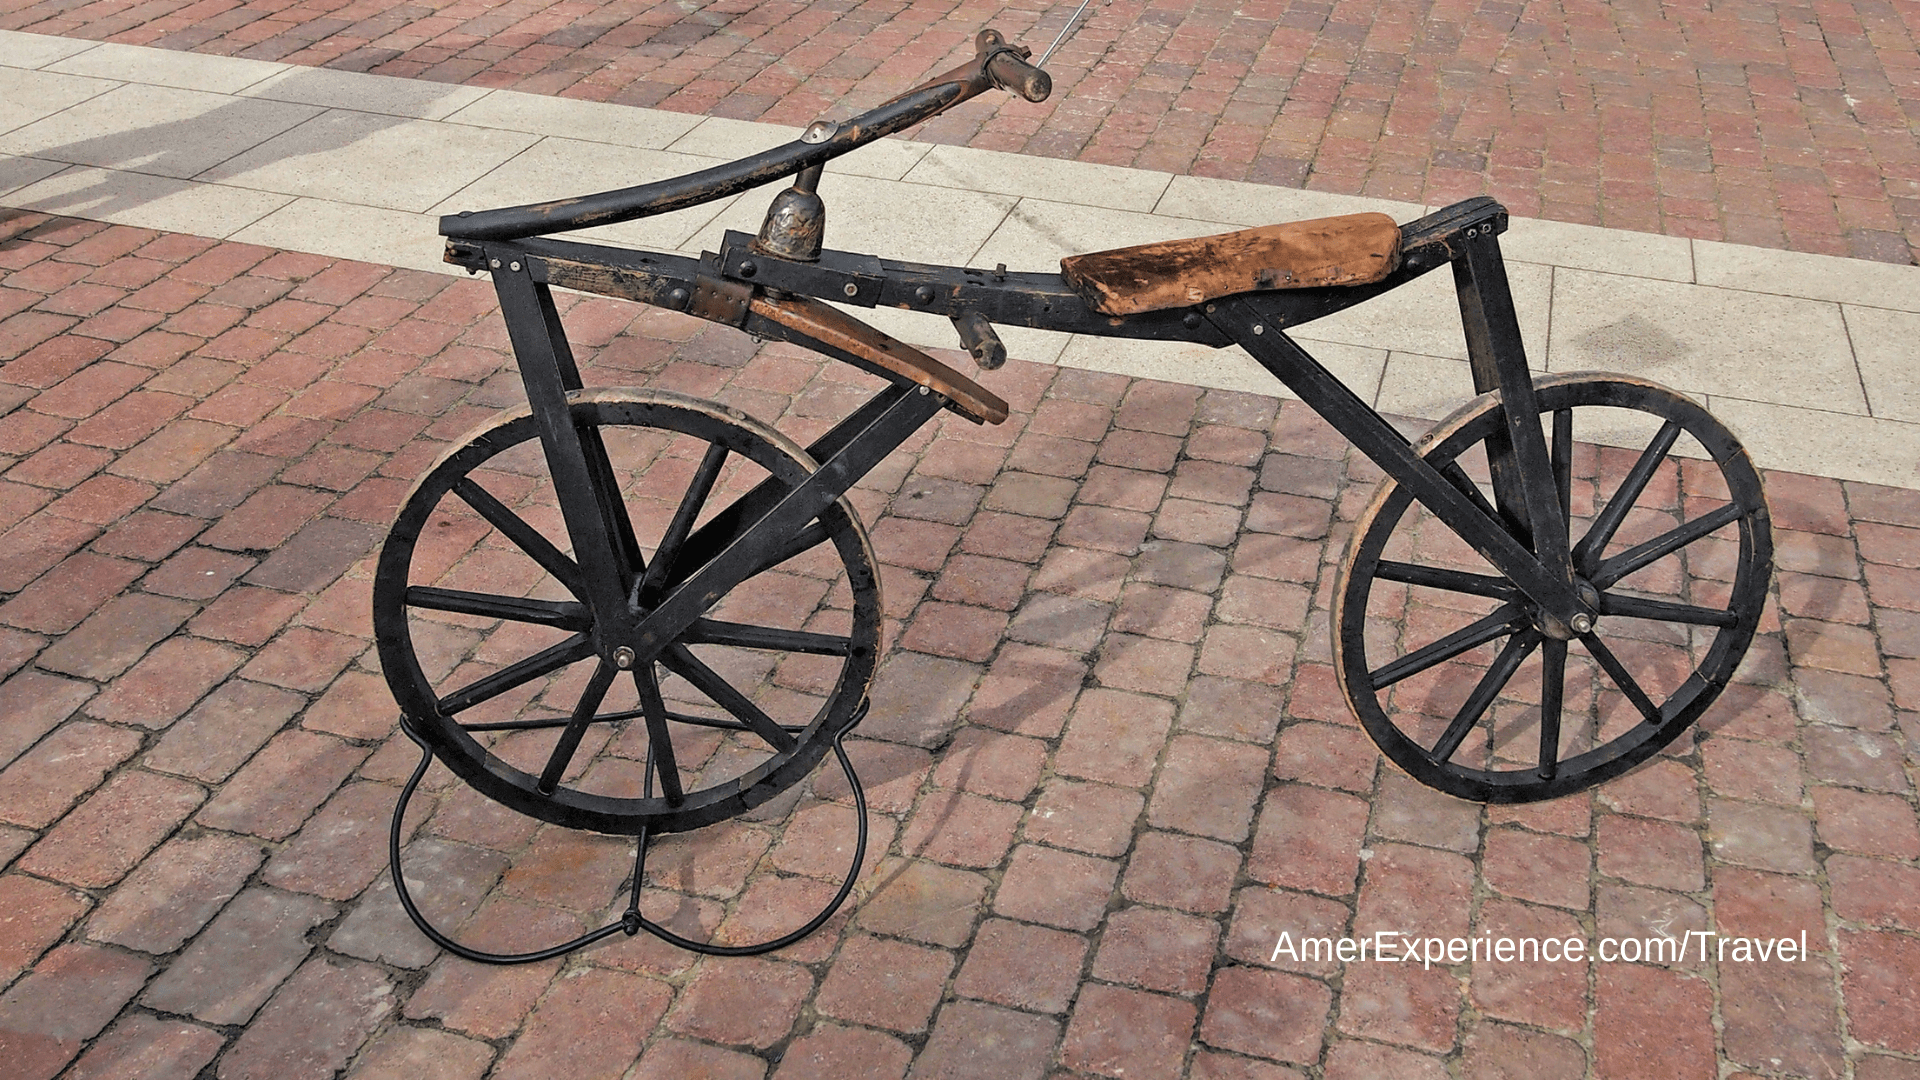 Fascinating book Bicycling Through Time reveals the weird and wonderful bicycles of yesteryear